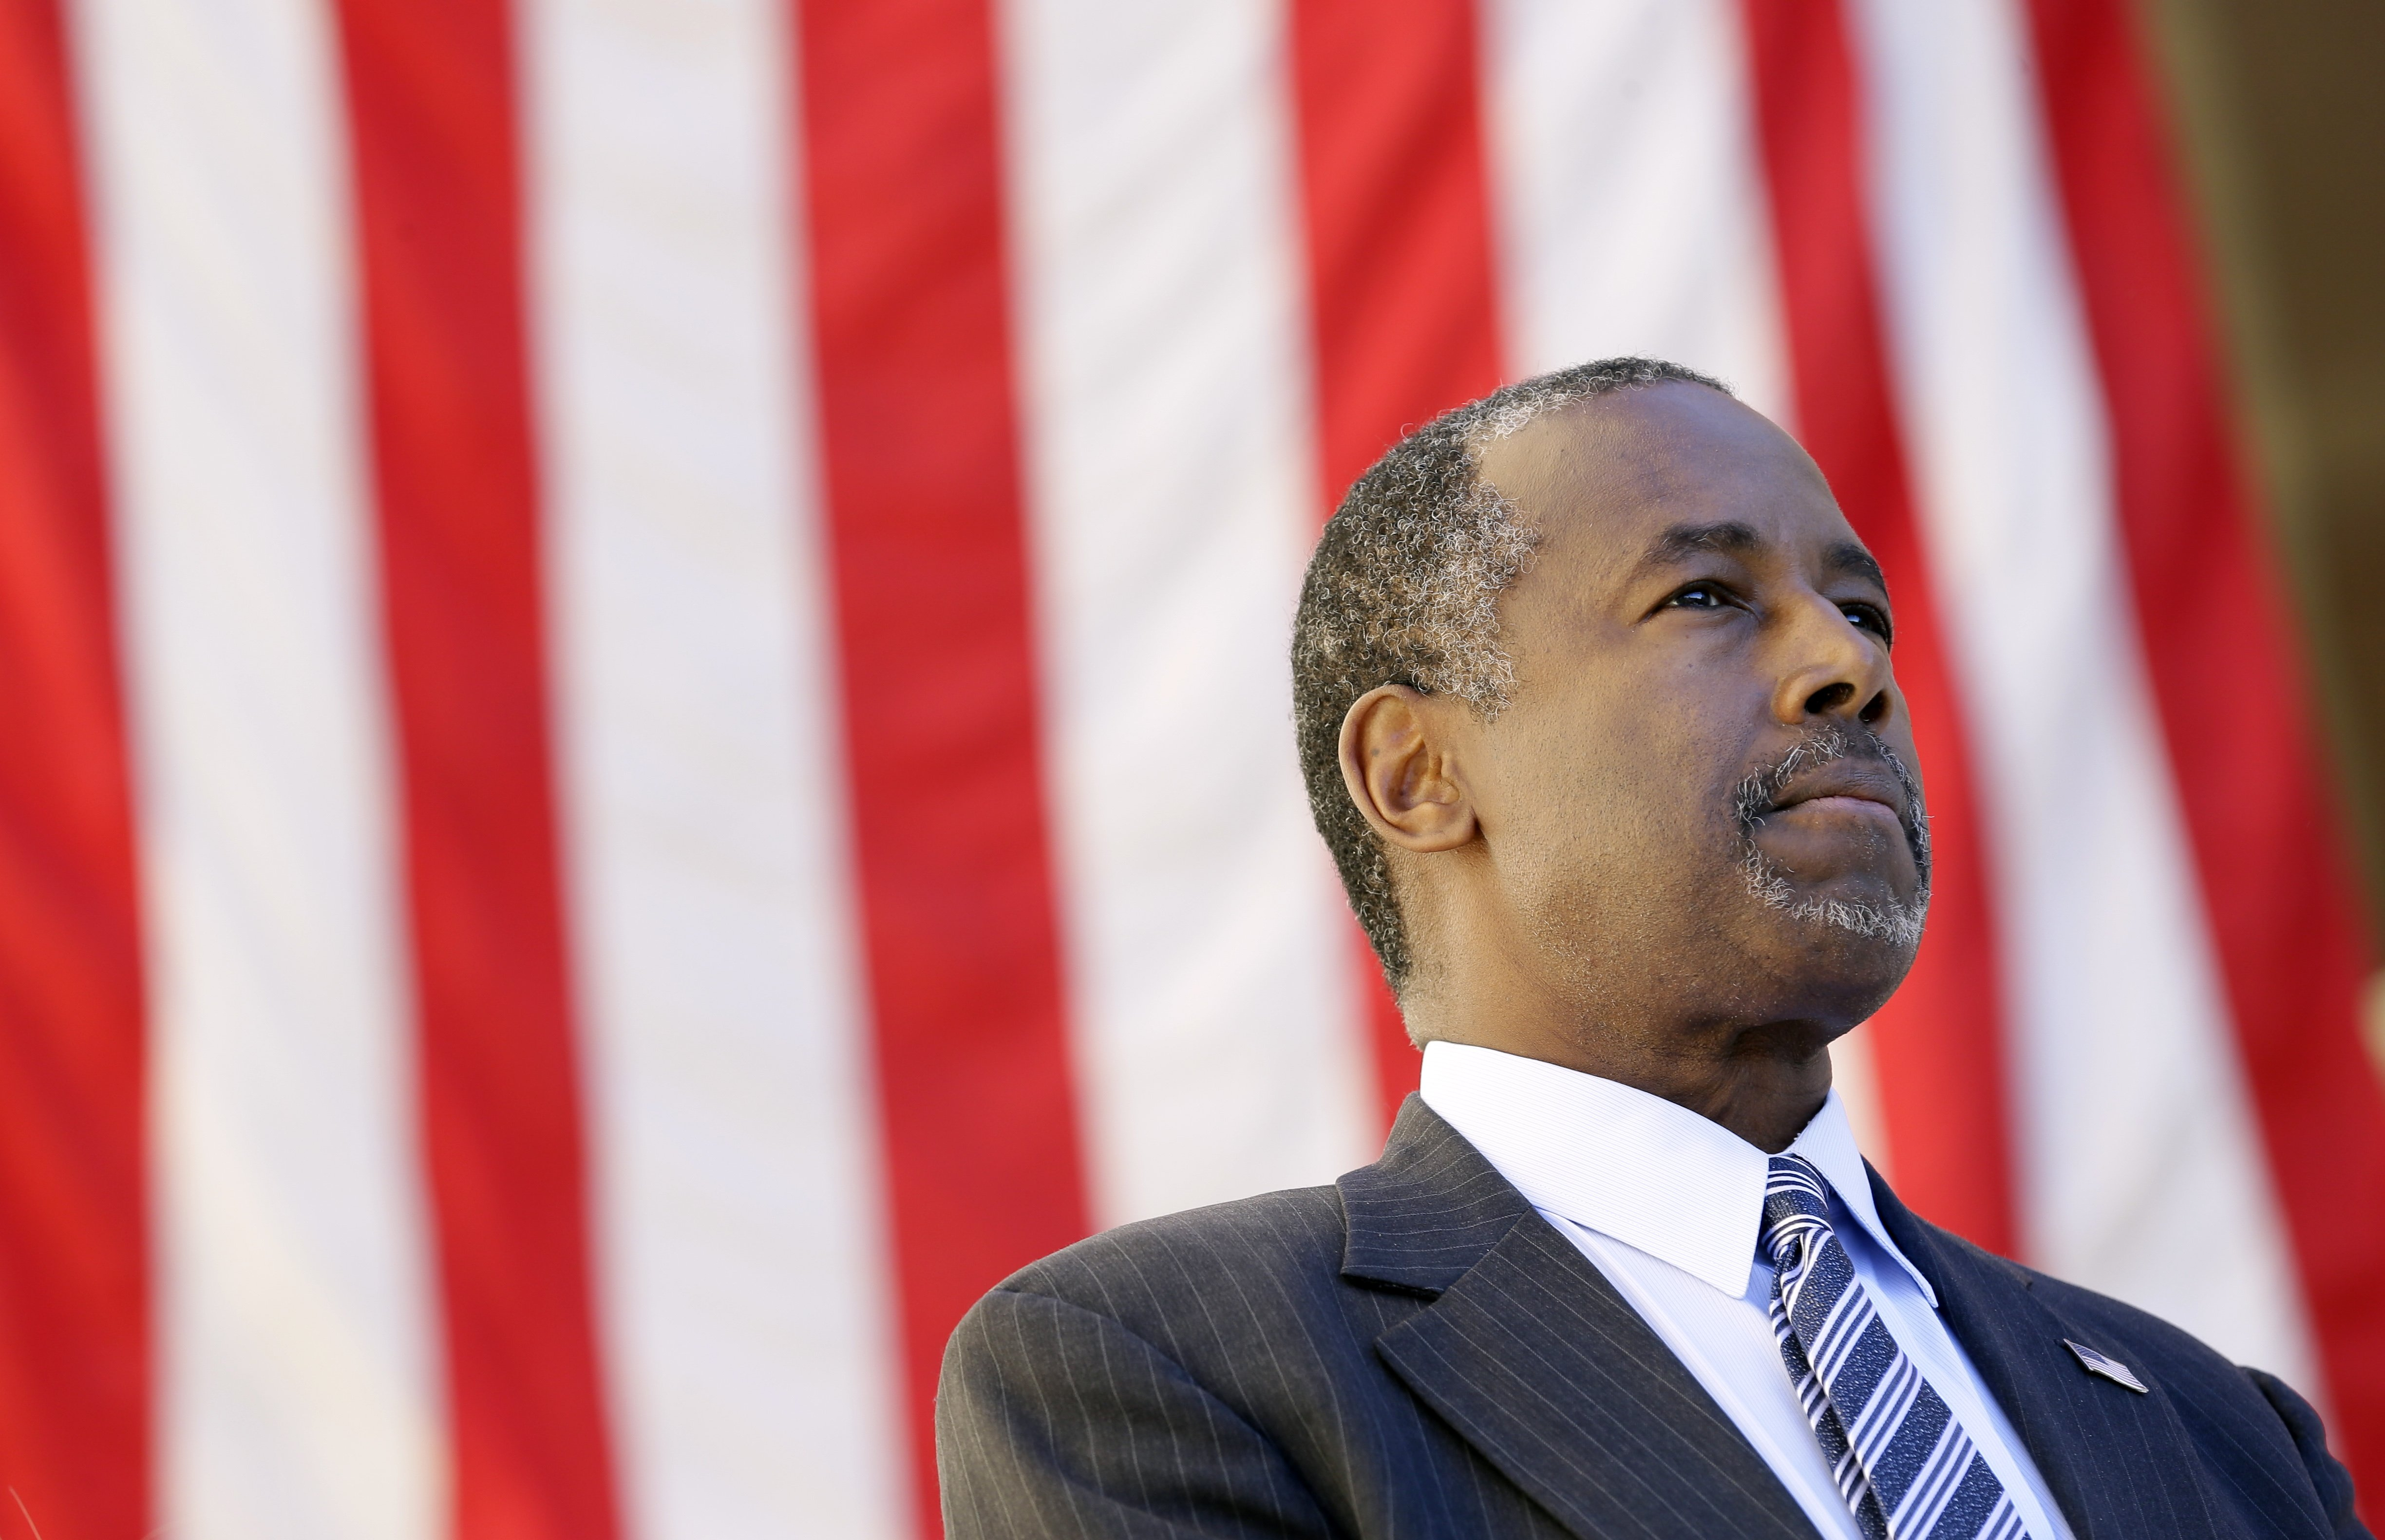 Ben Carson looks on as he is introduced to speak at a town hall meeting, on Oct. 2, 2015, in Ankeny, IA.